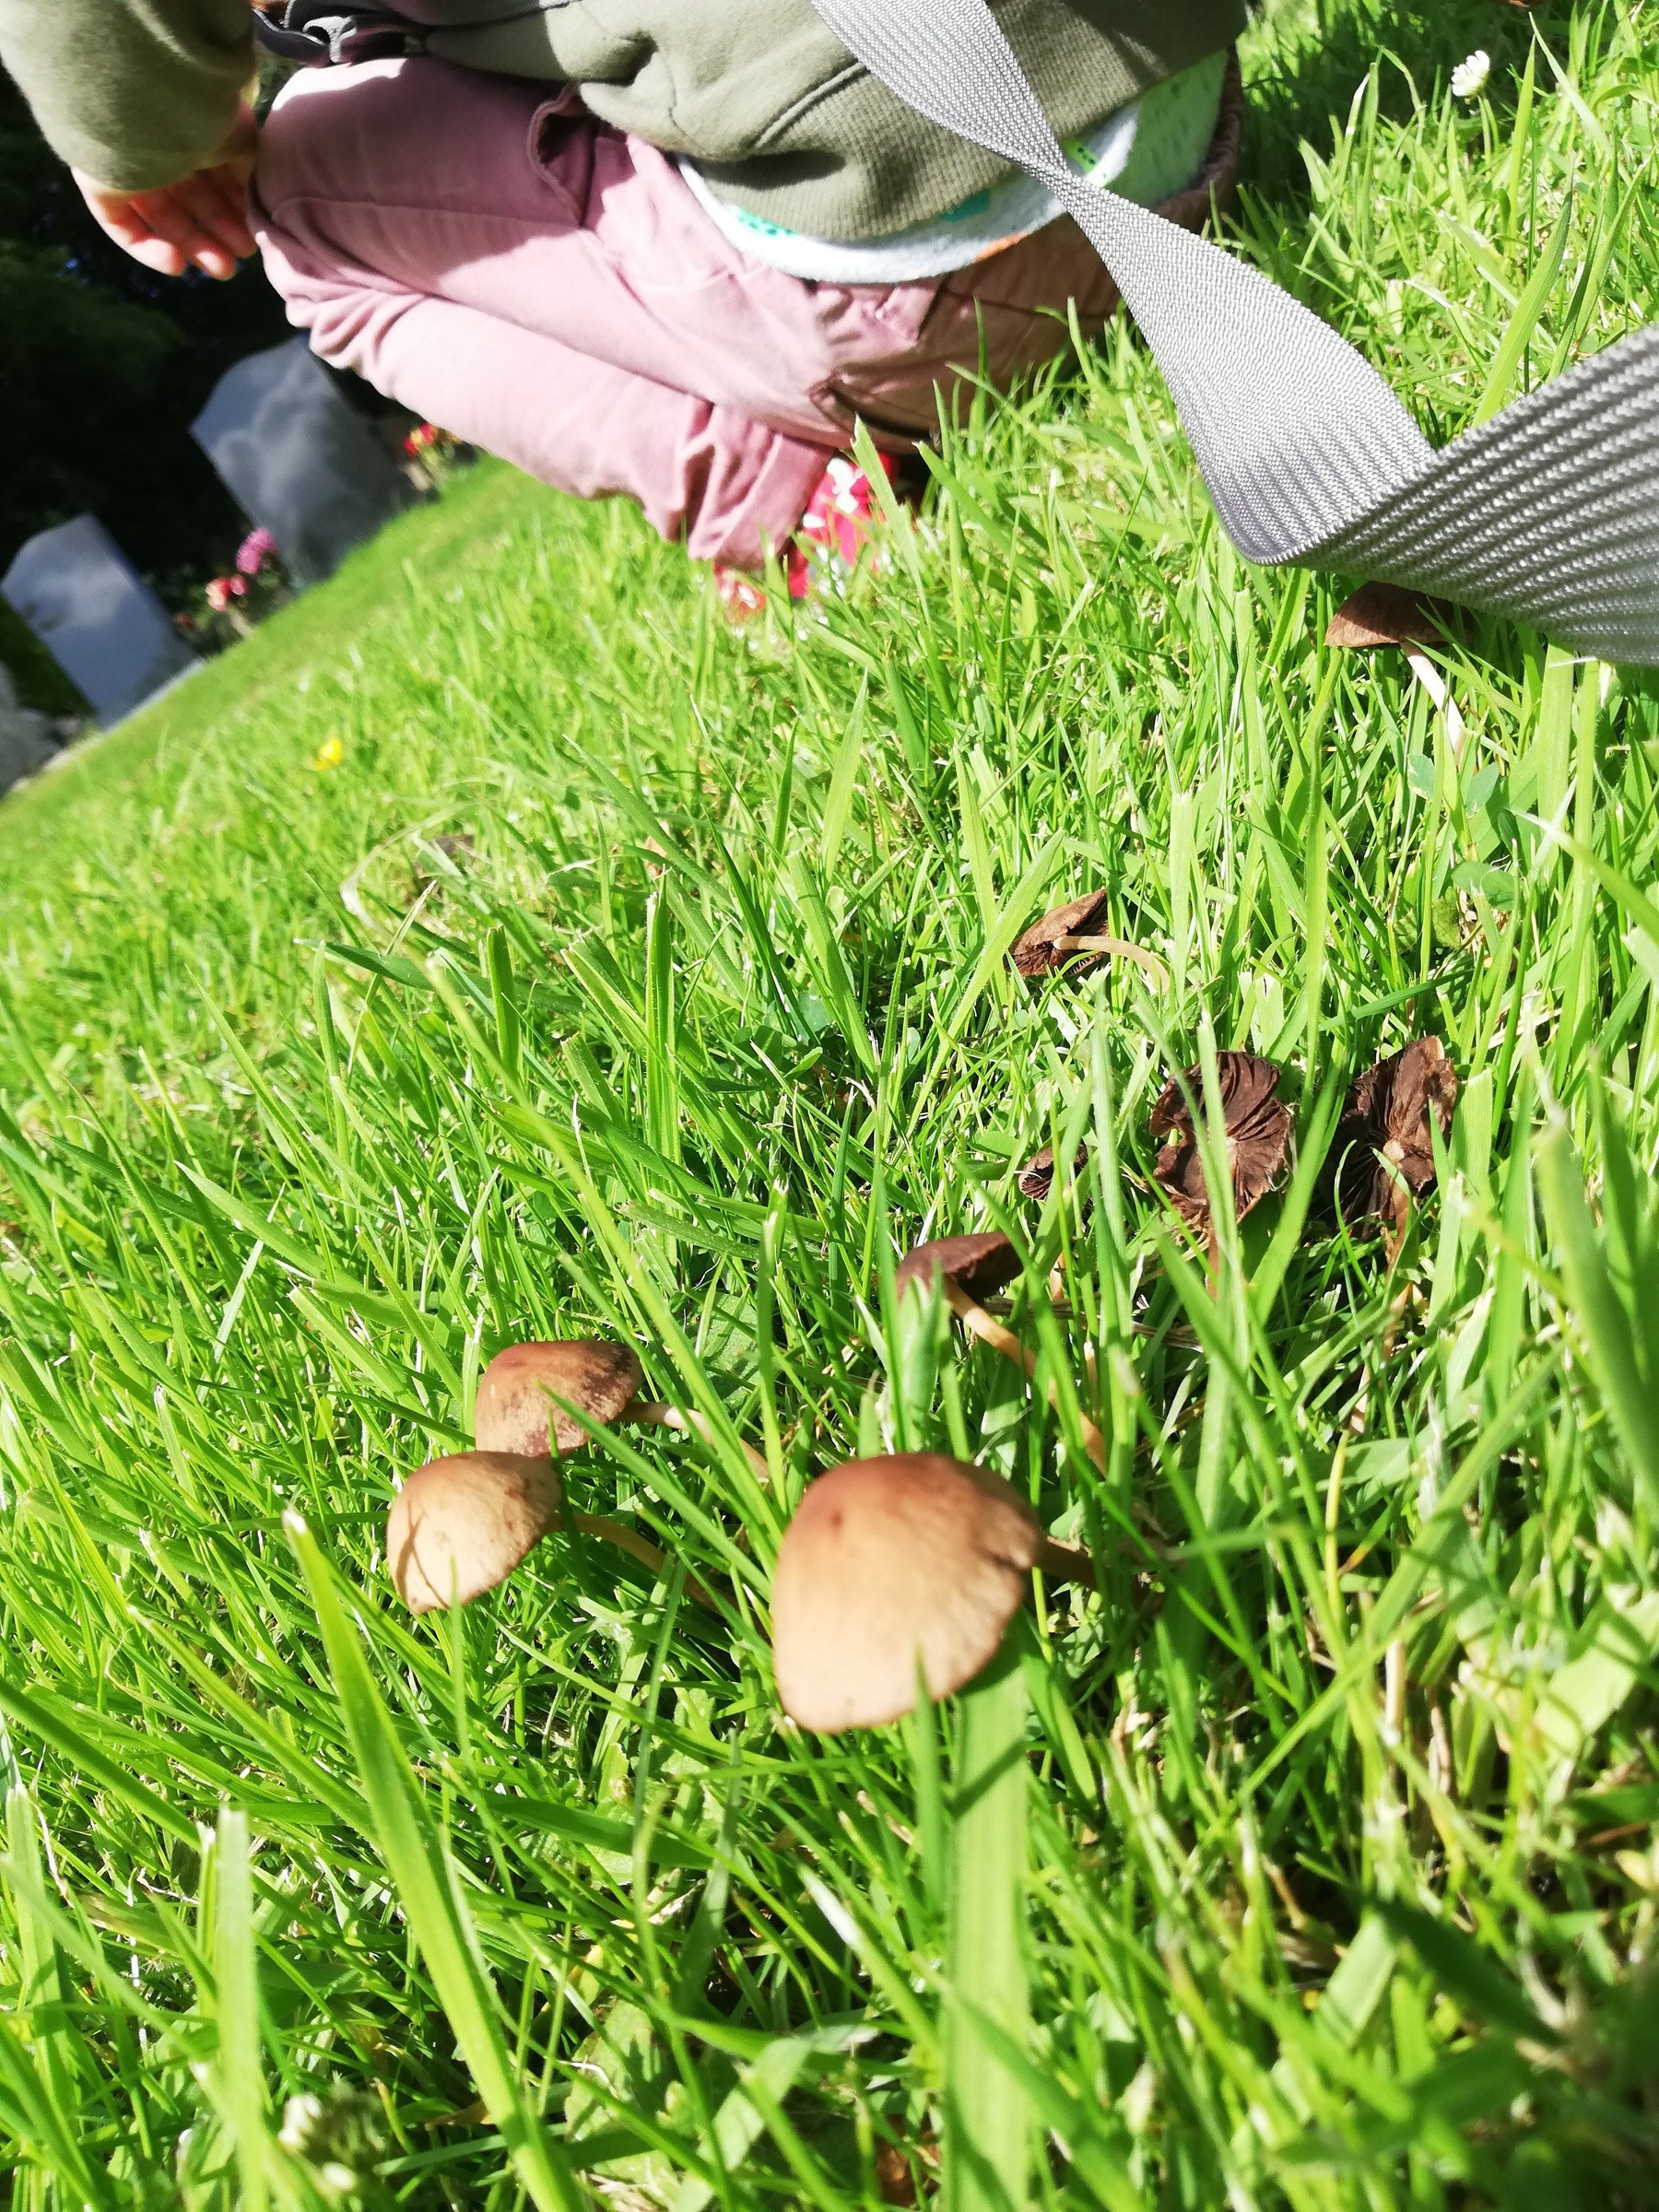 small brown mushrooms growing in the grass, a toddler is crouching down in the background